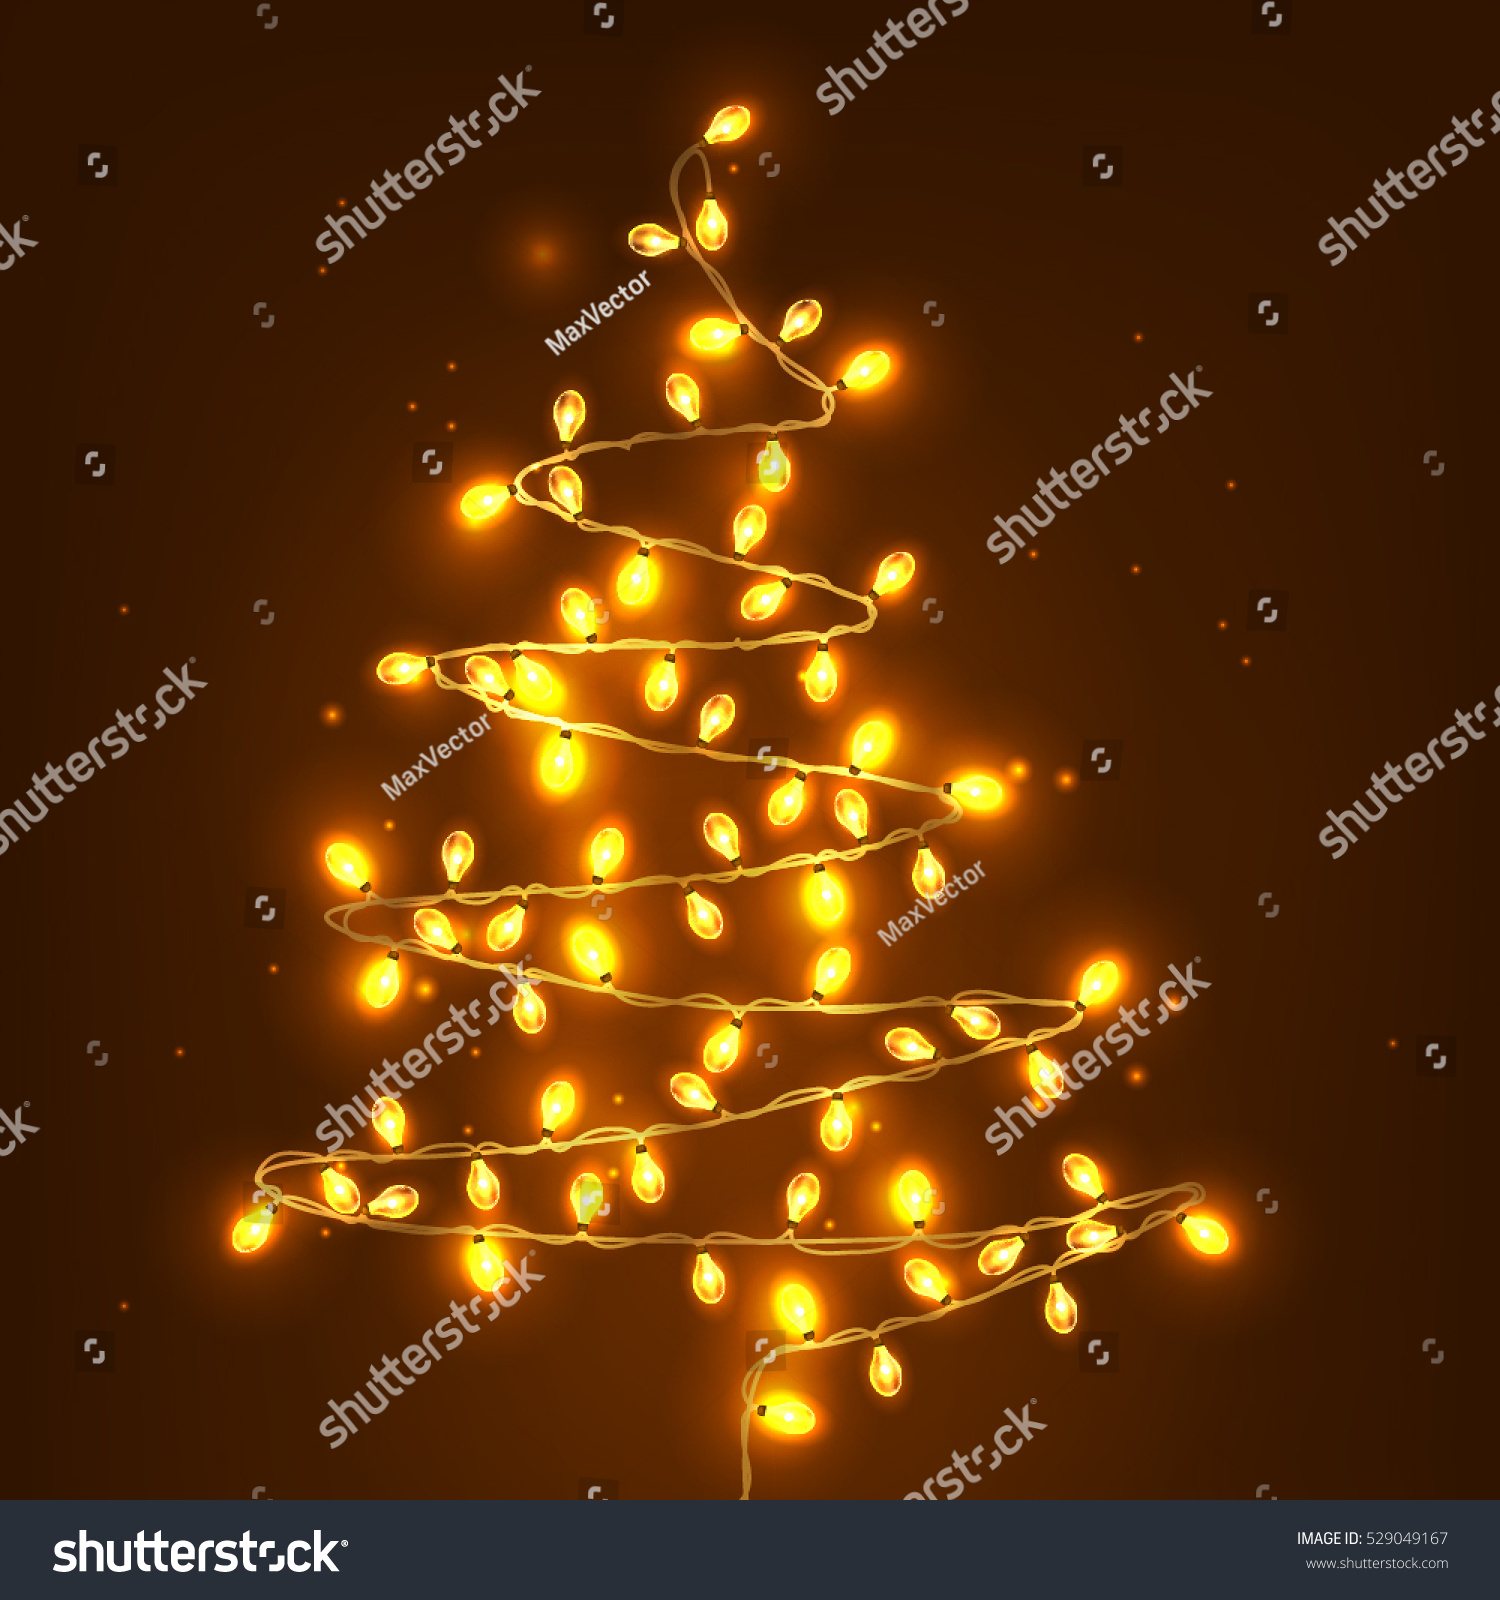 christmas tree made of lights realistic holiday illustration vector illustration - Christmas Tree Made Of Lights